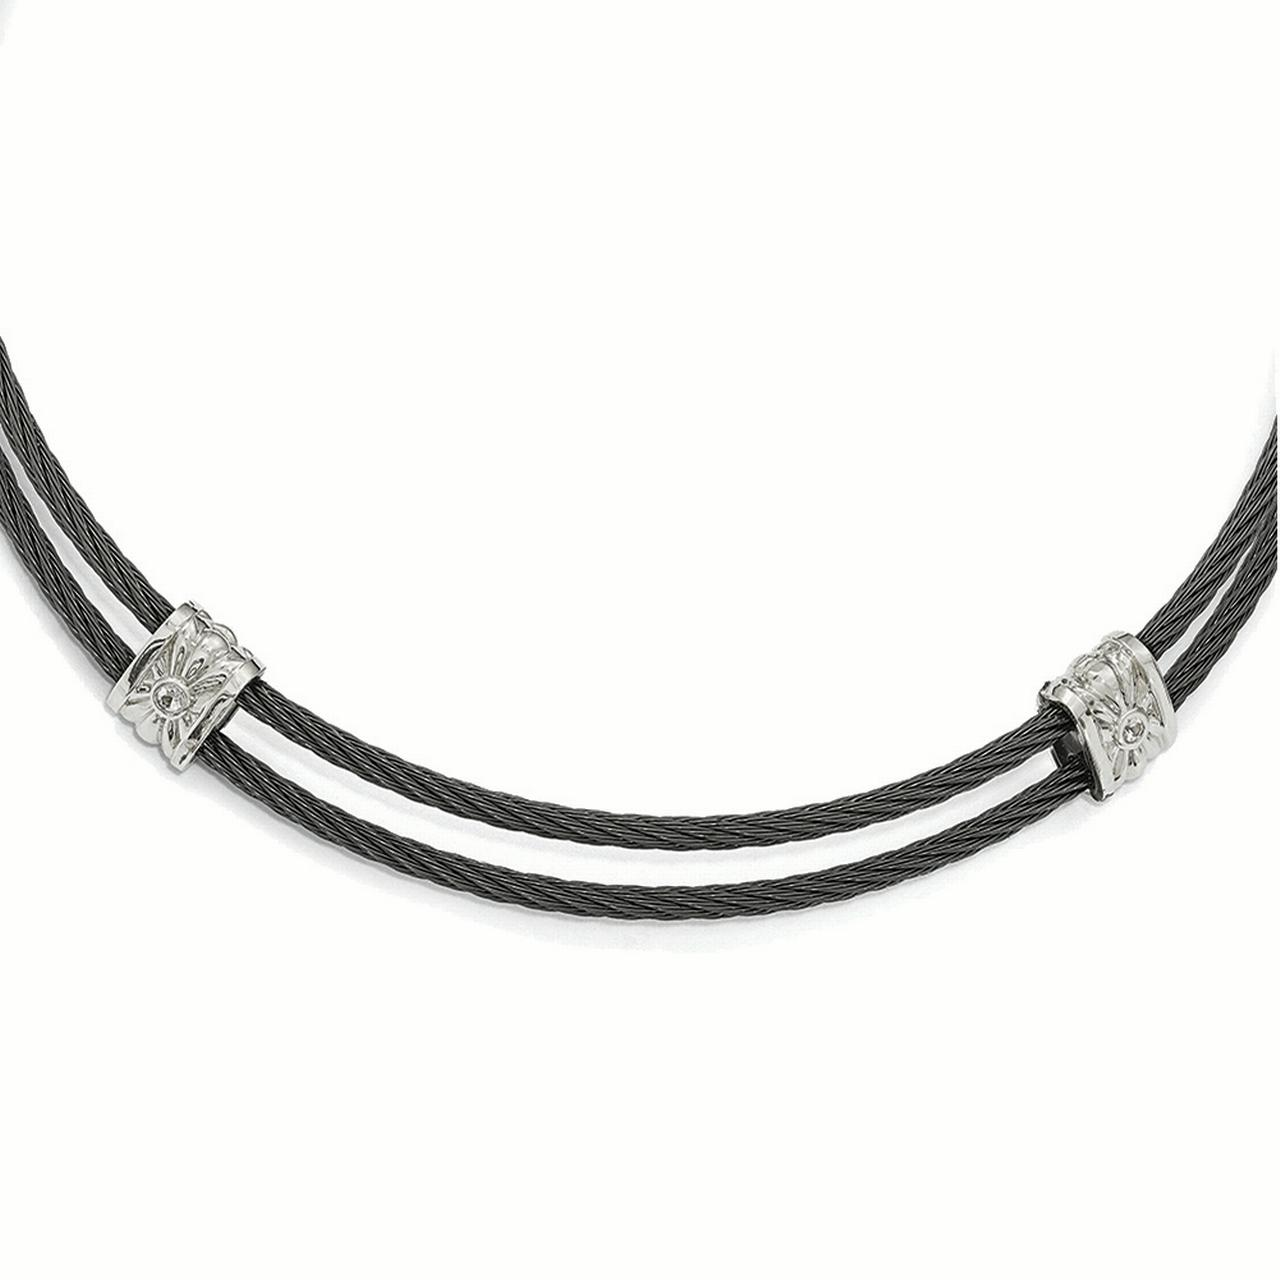 Lex & Lu Edward Mirell Titanium & Sterling Silver White Sapphire Cable Necklace by